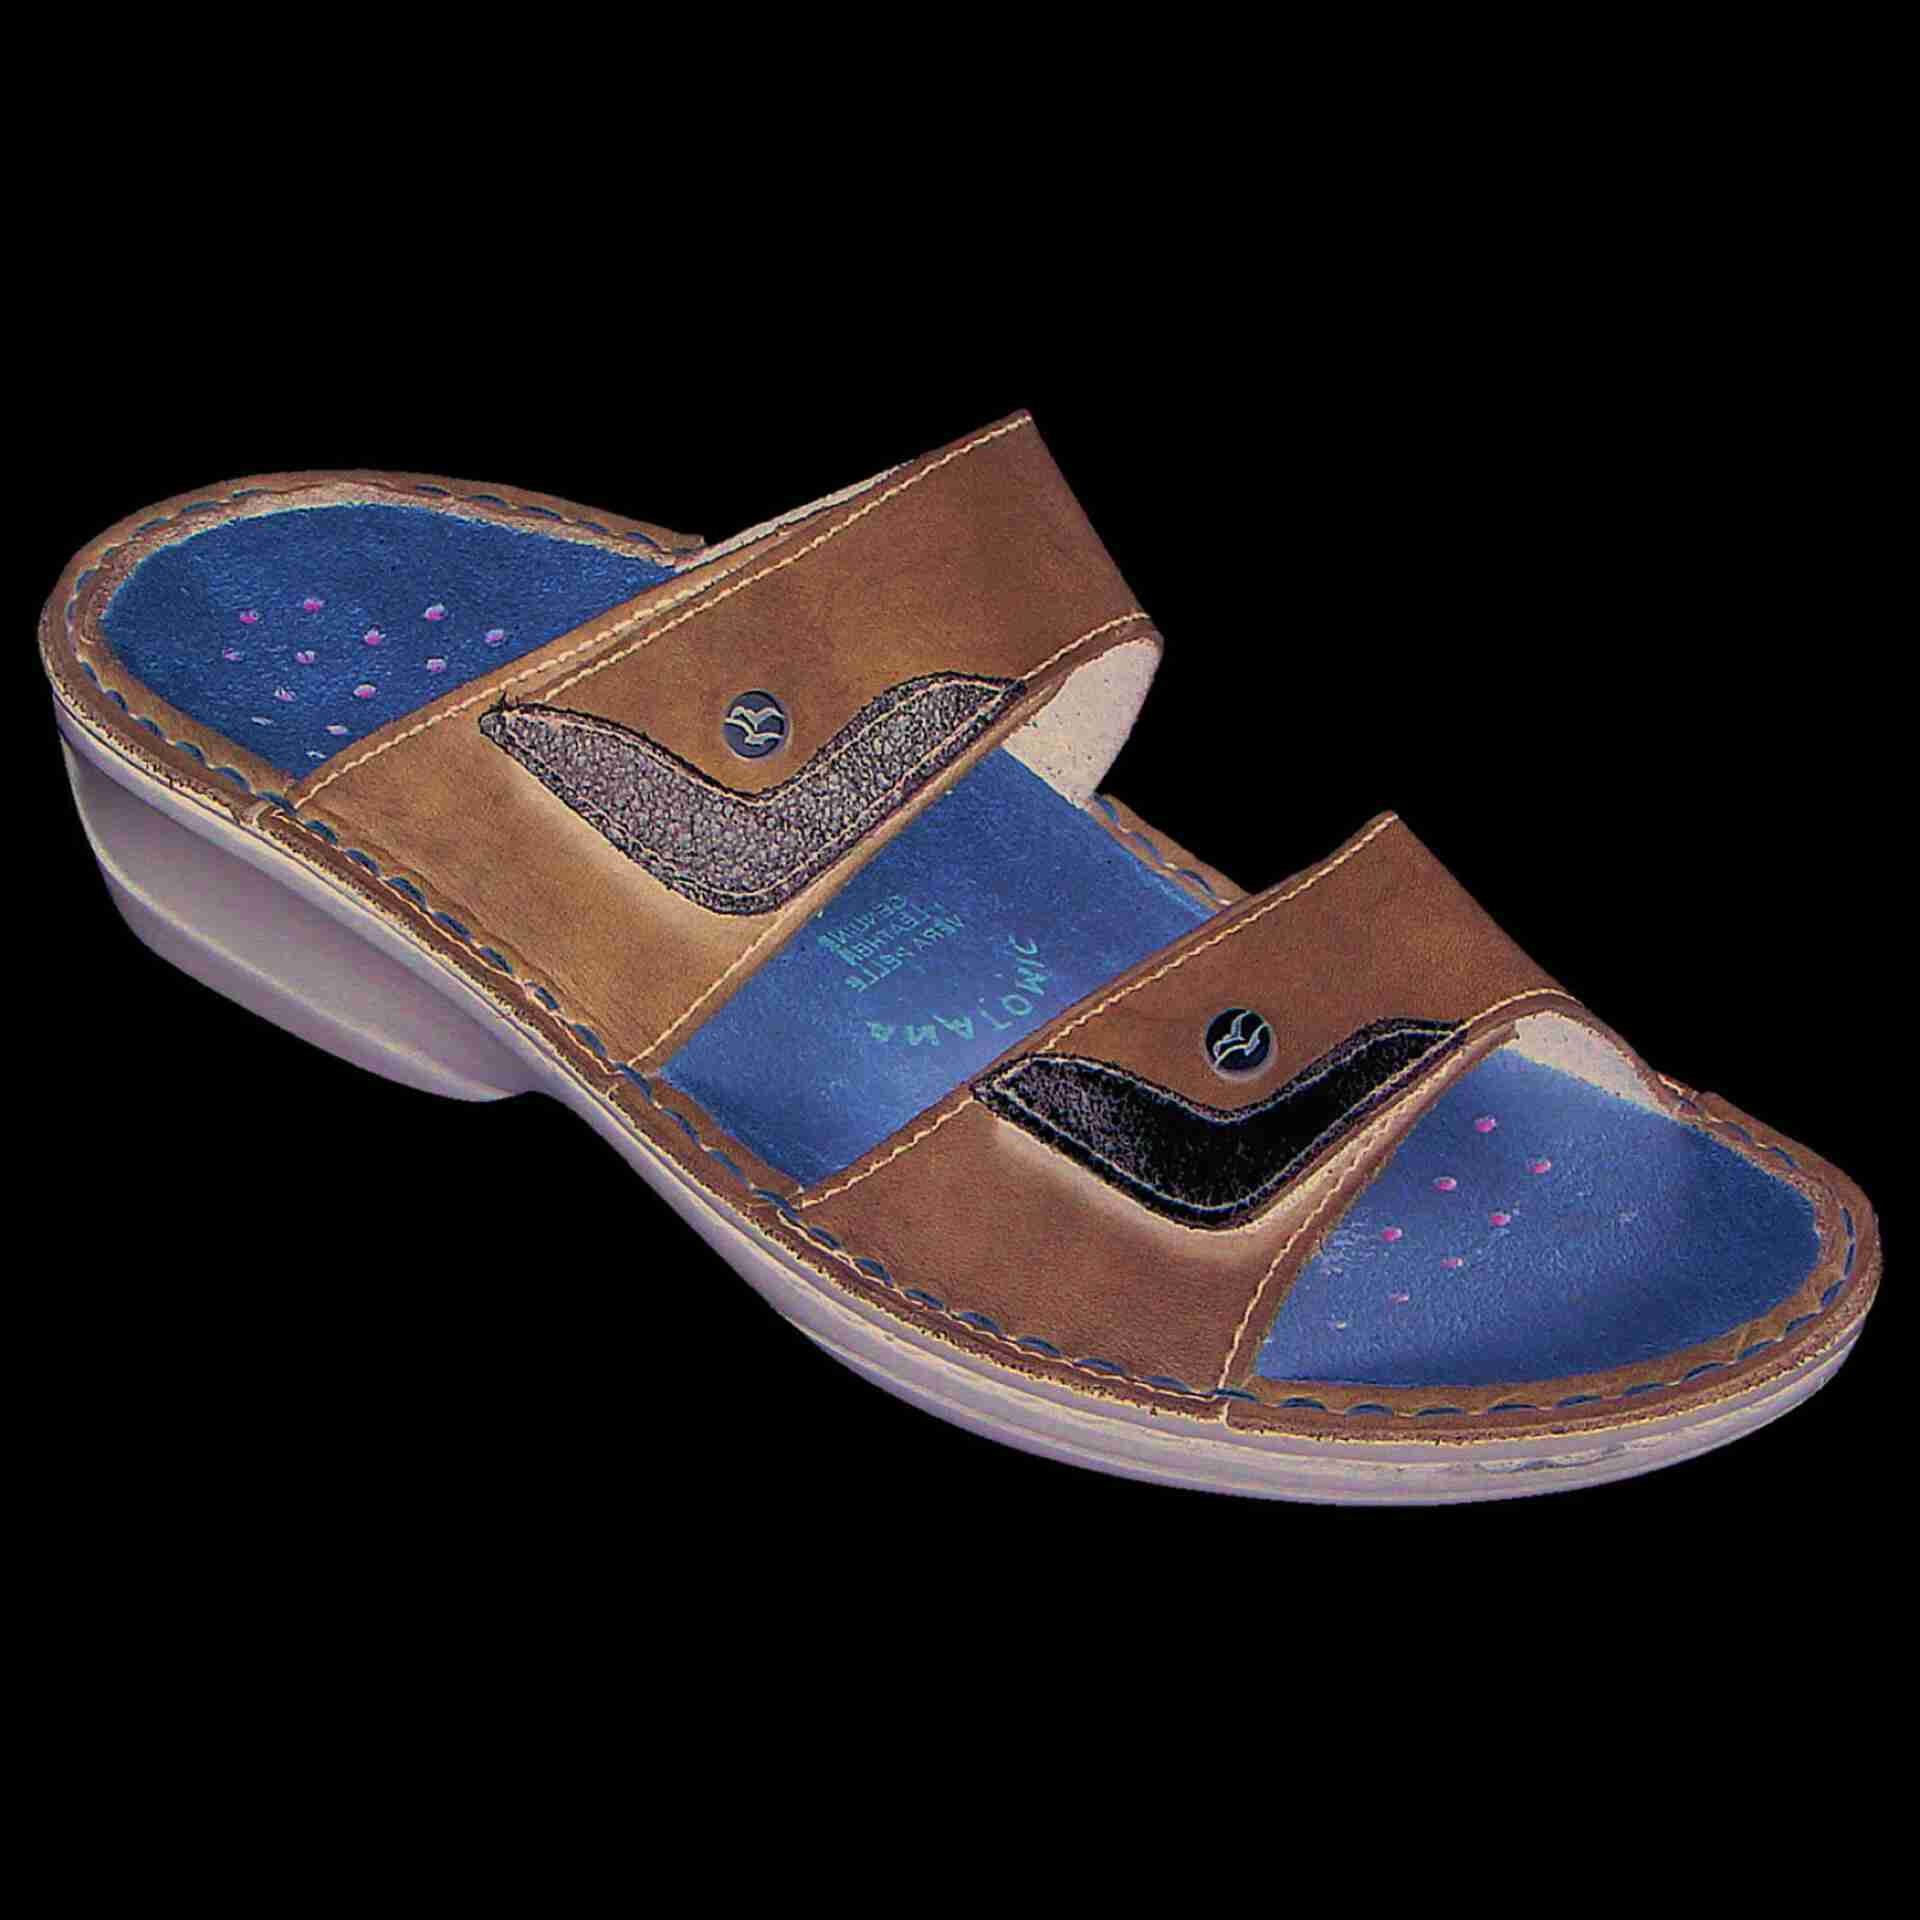 Ladies Flyflot Shoes for sale in UK